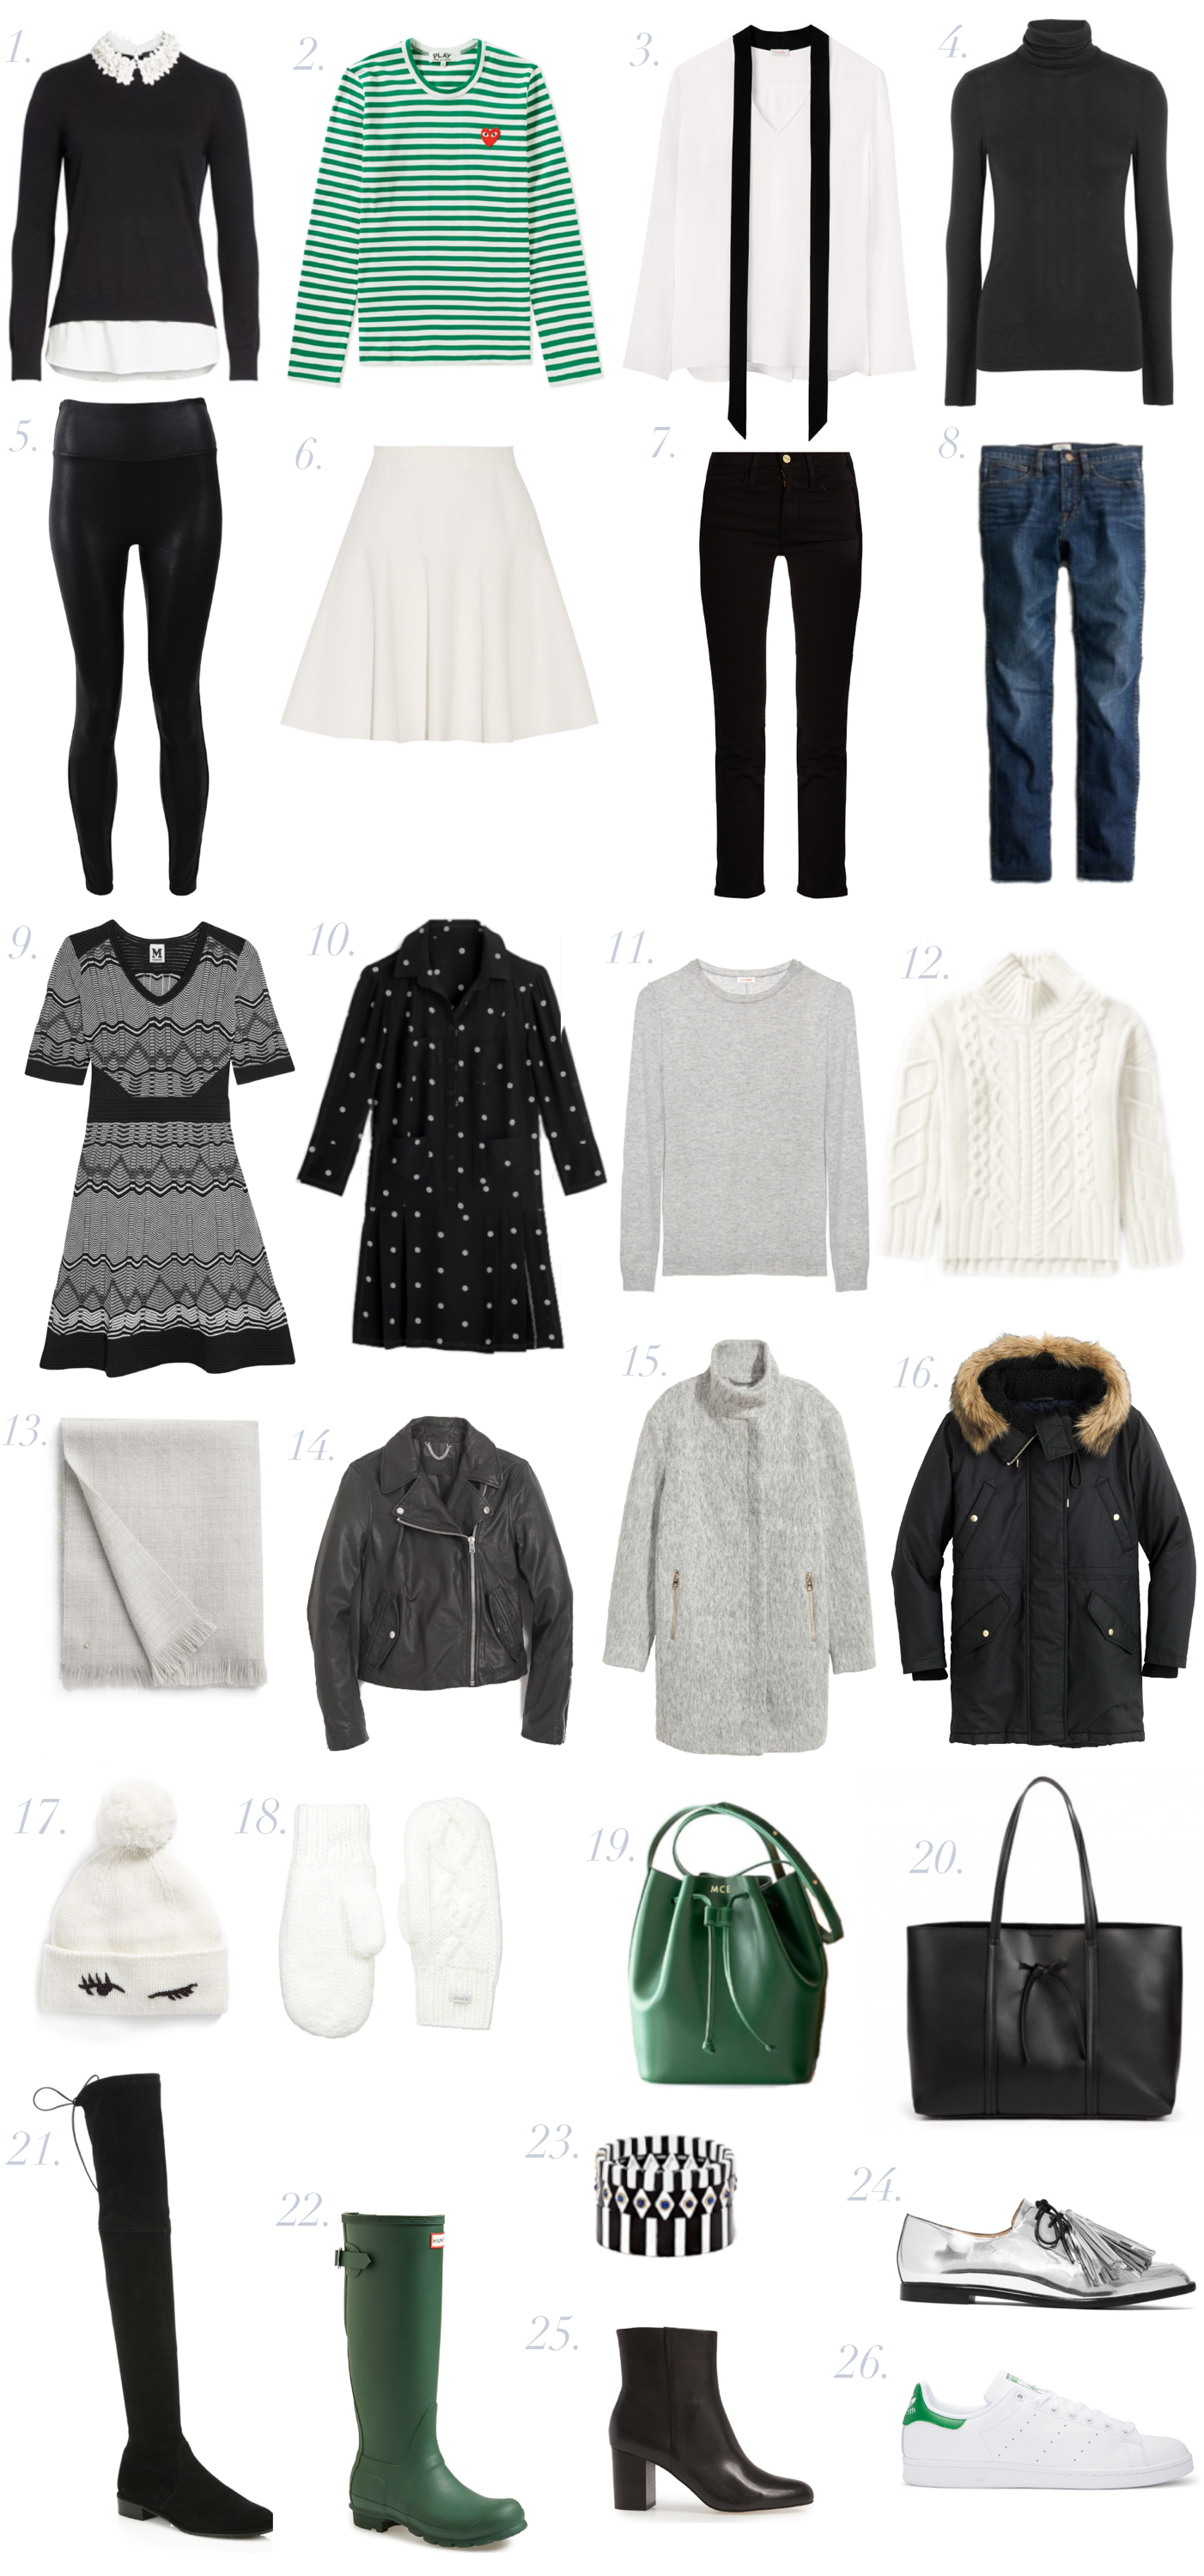 Packing-for-Europe-Winter-MonicaFrancis